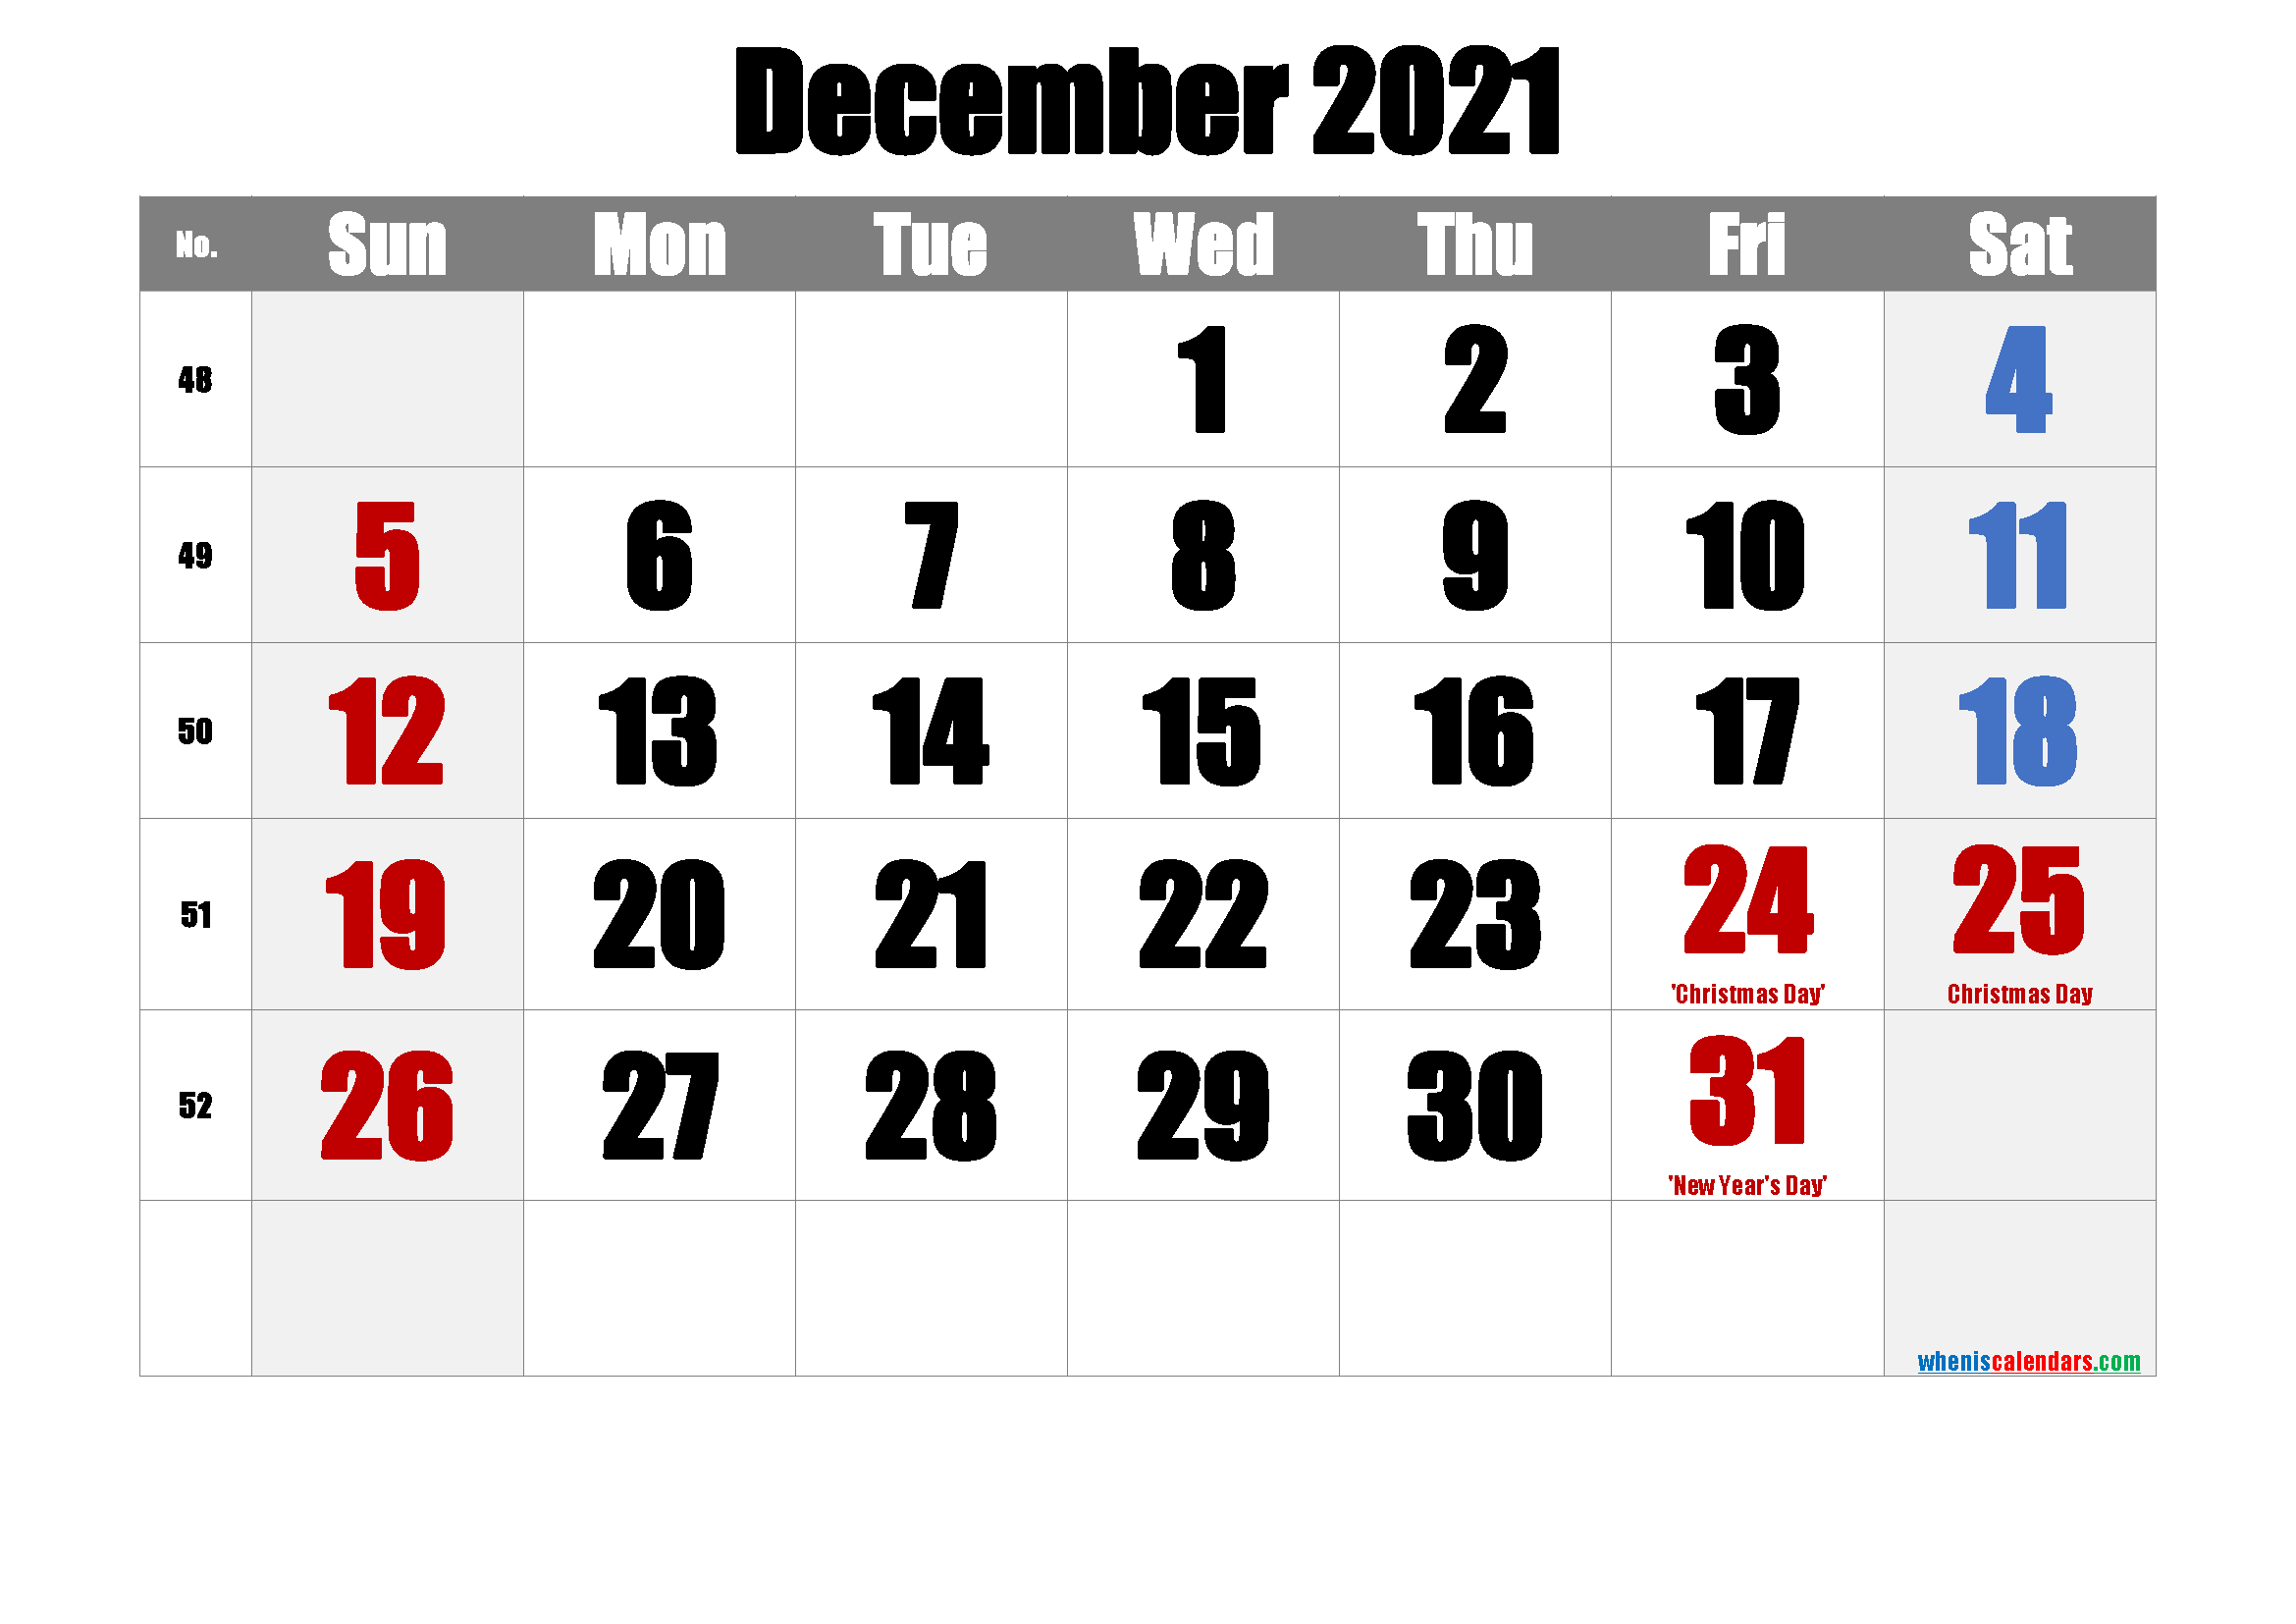 DECEMBER 2021 Printable Calendar with Holidays